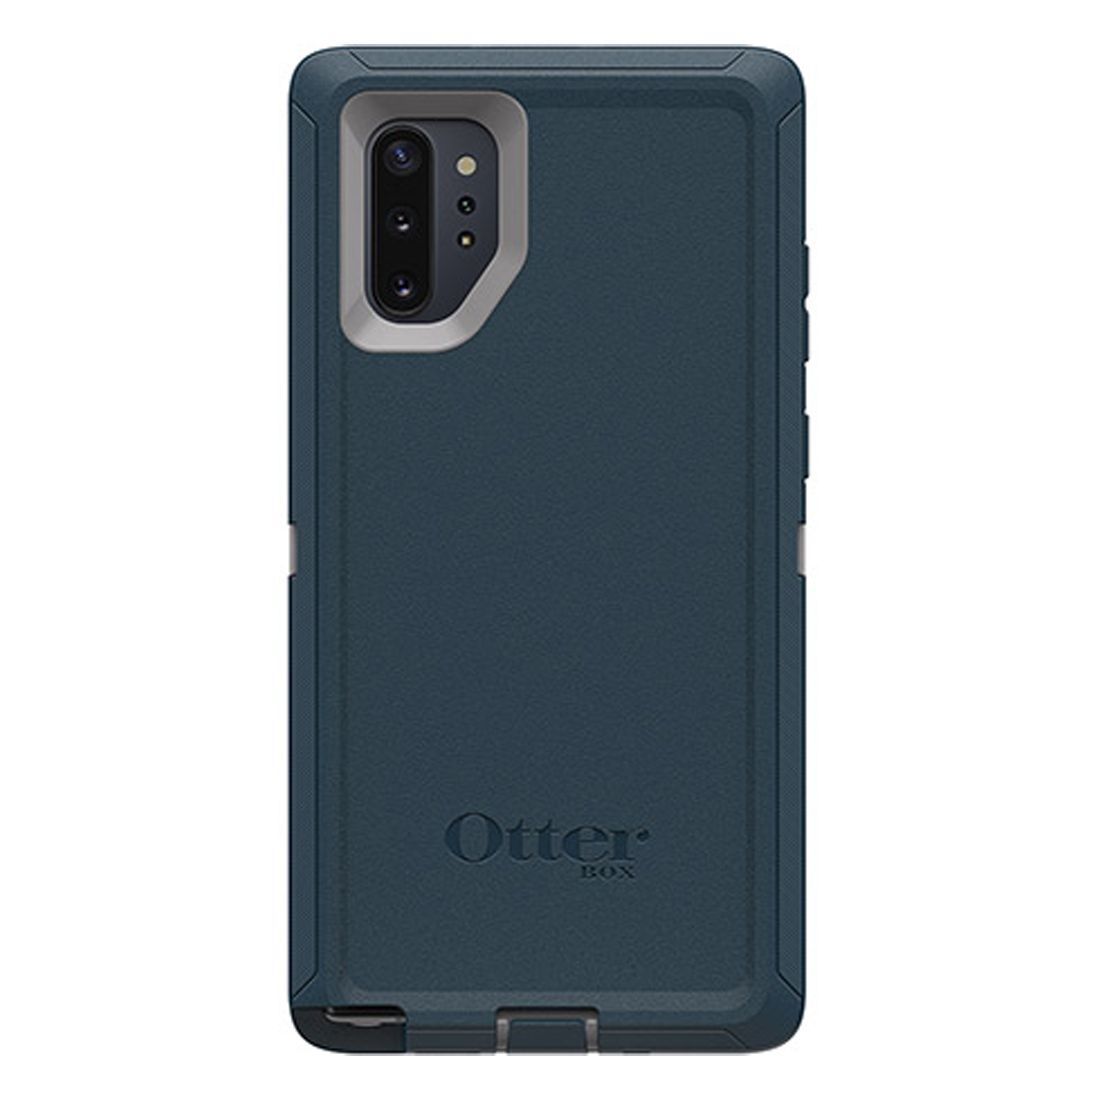 Otterbox Defender Case For Samsung Galaxy Note 10+ Plus - Gone Fishin Blue